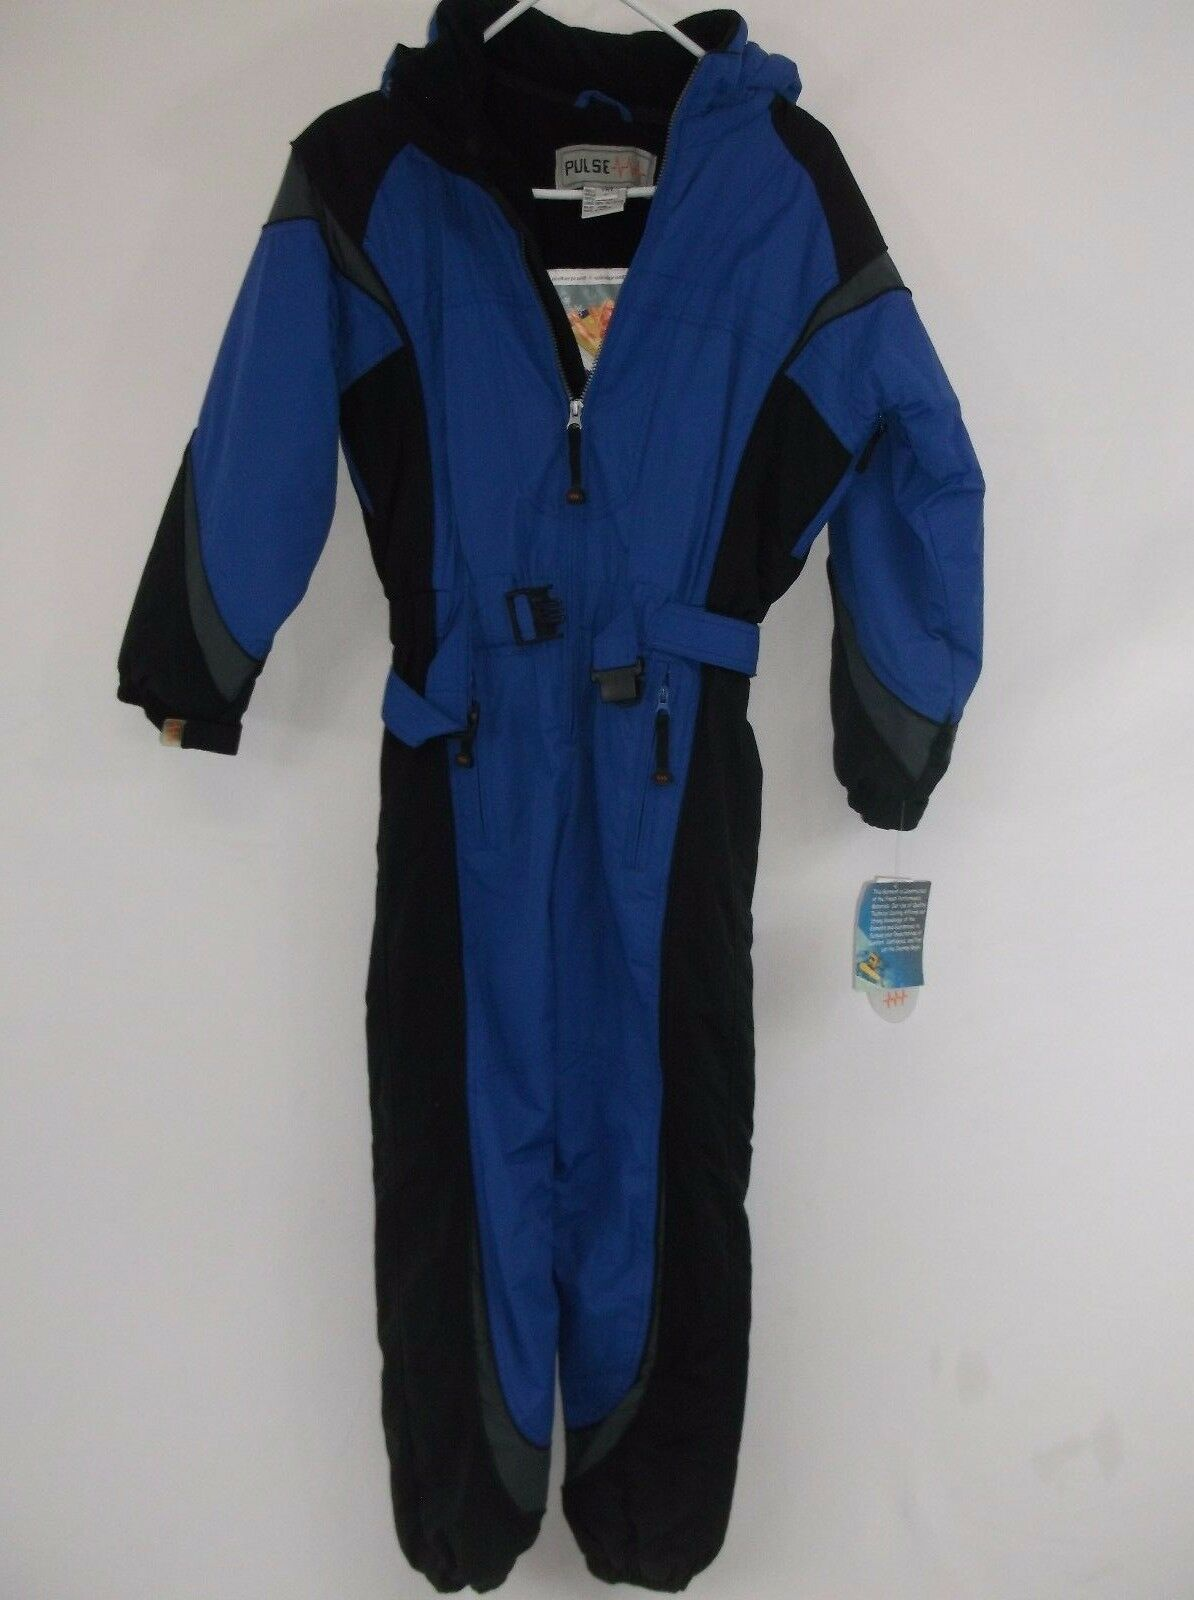 PULSE Insulated Snow Suit for Teens, Größe Youth Large One Piece Suit. WINDPROOF